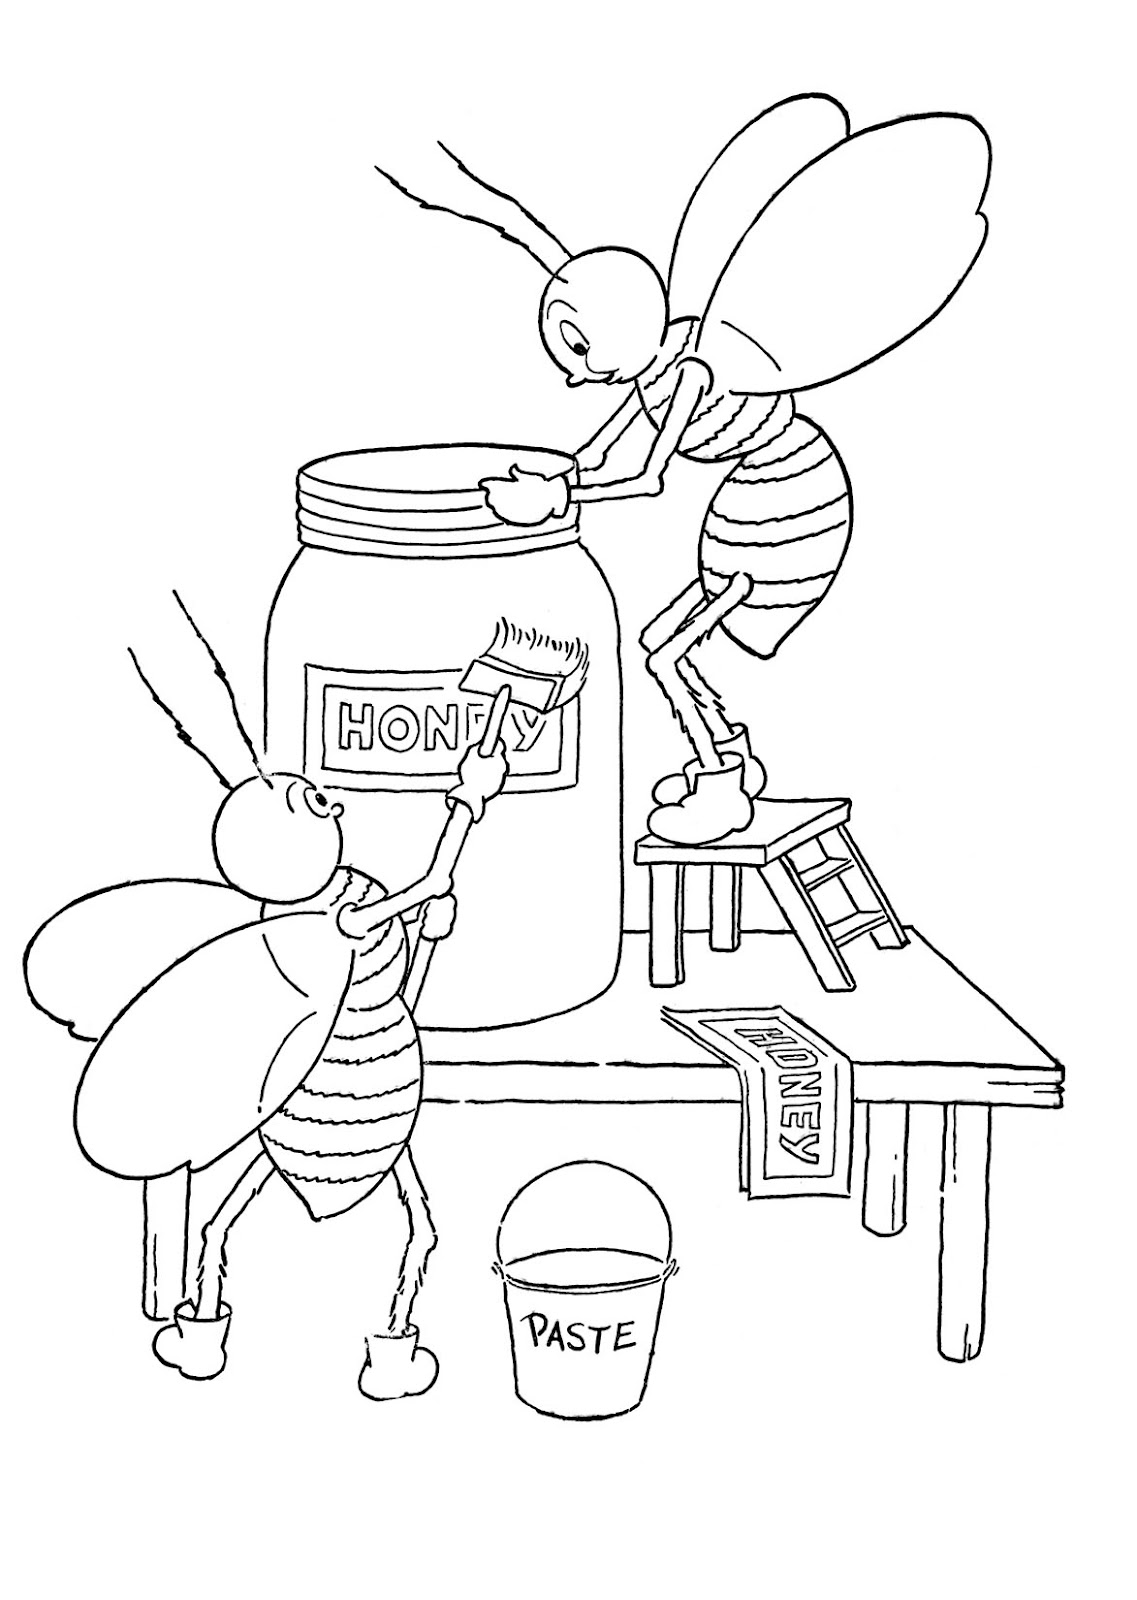 Kids Printable - Honey Bees Coloring Page - The Graphics Fairy